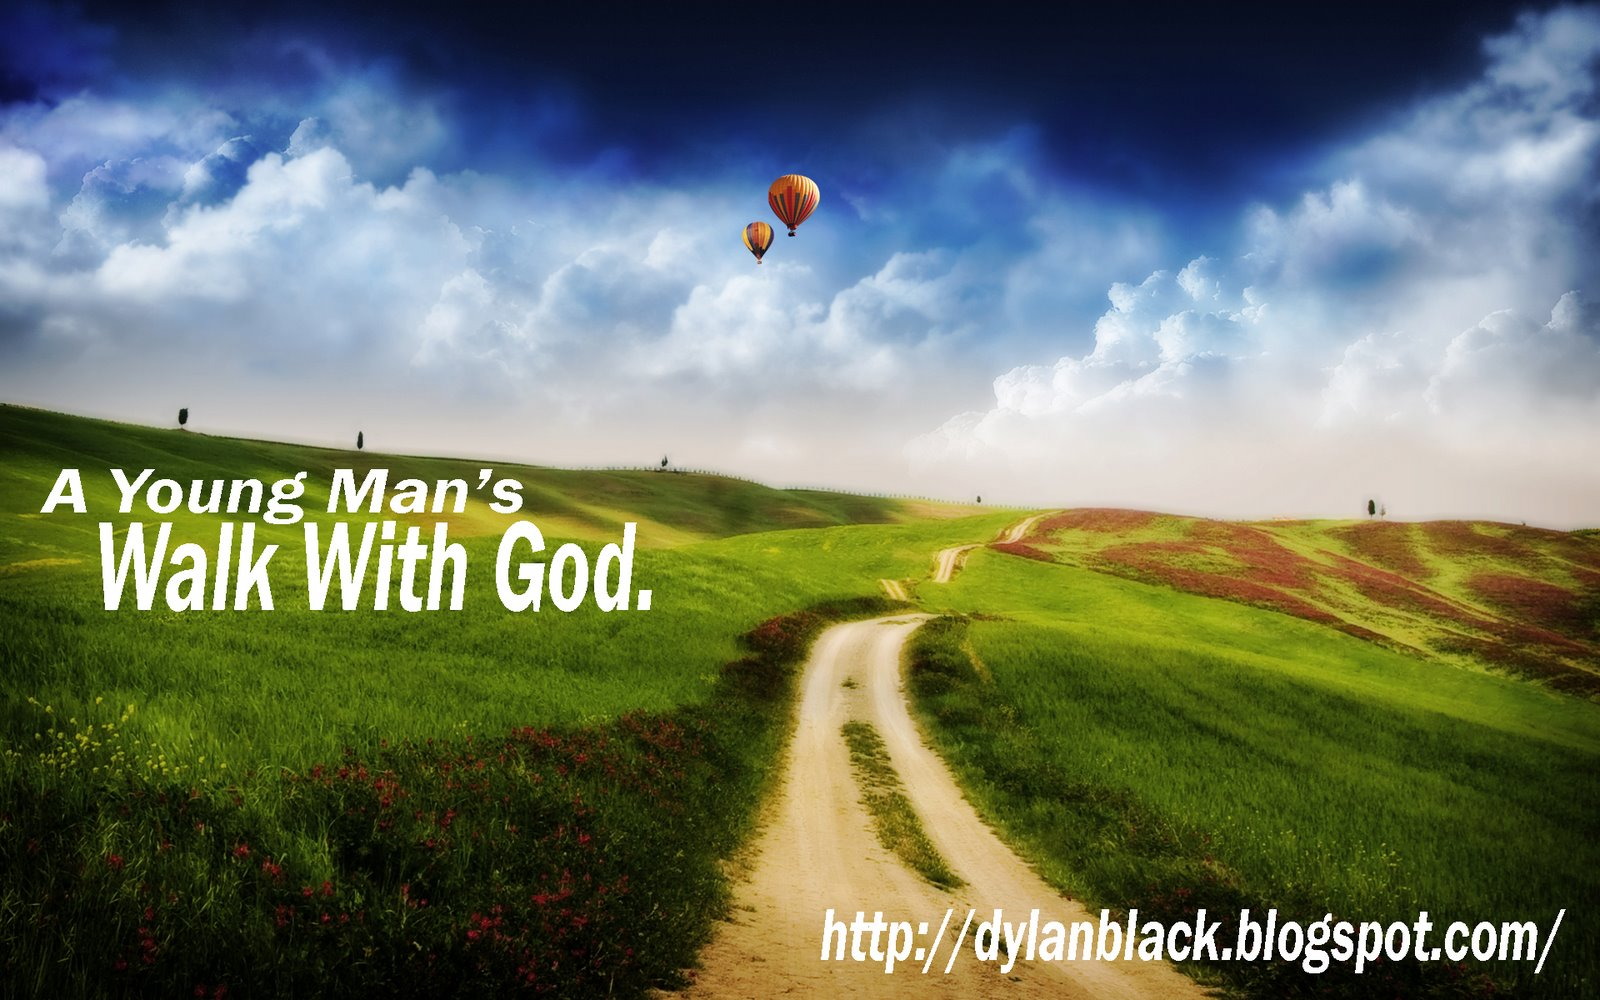 A Young Man's Walk With God